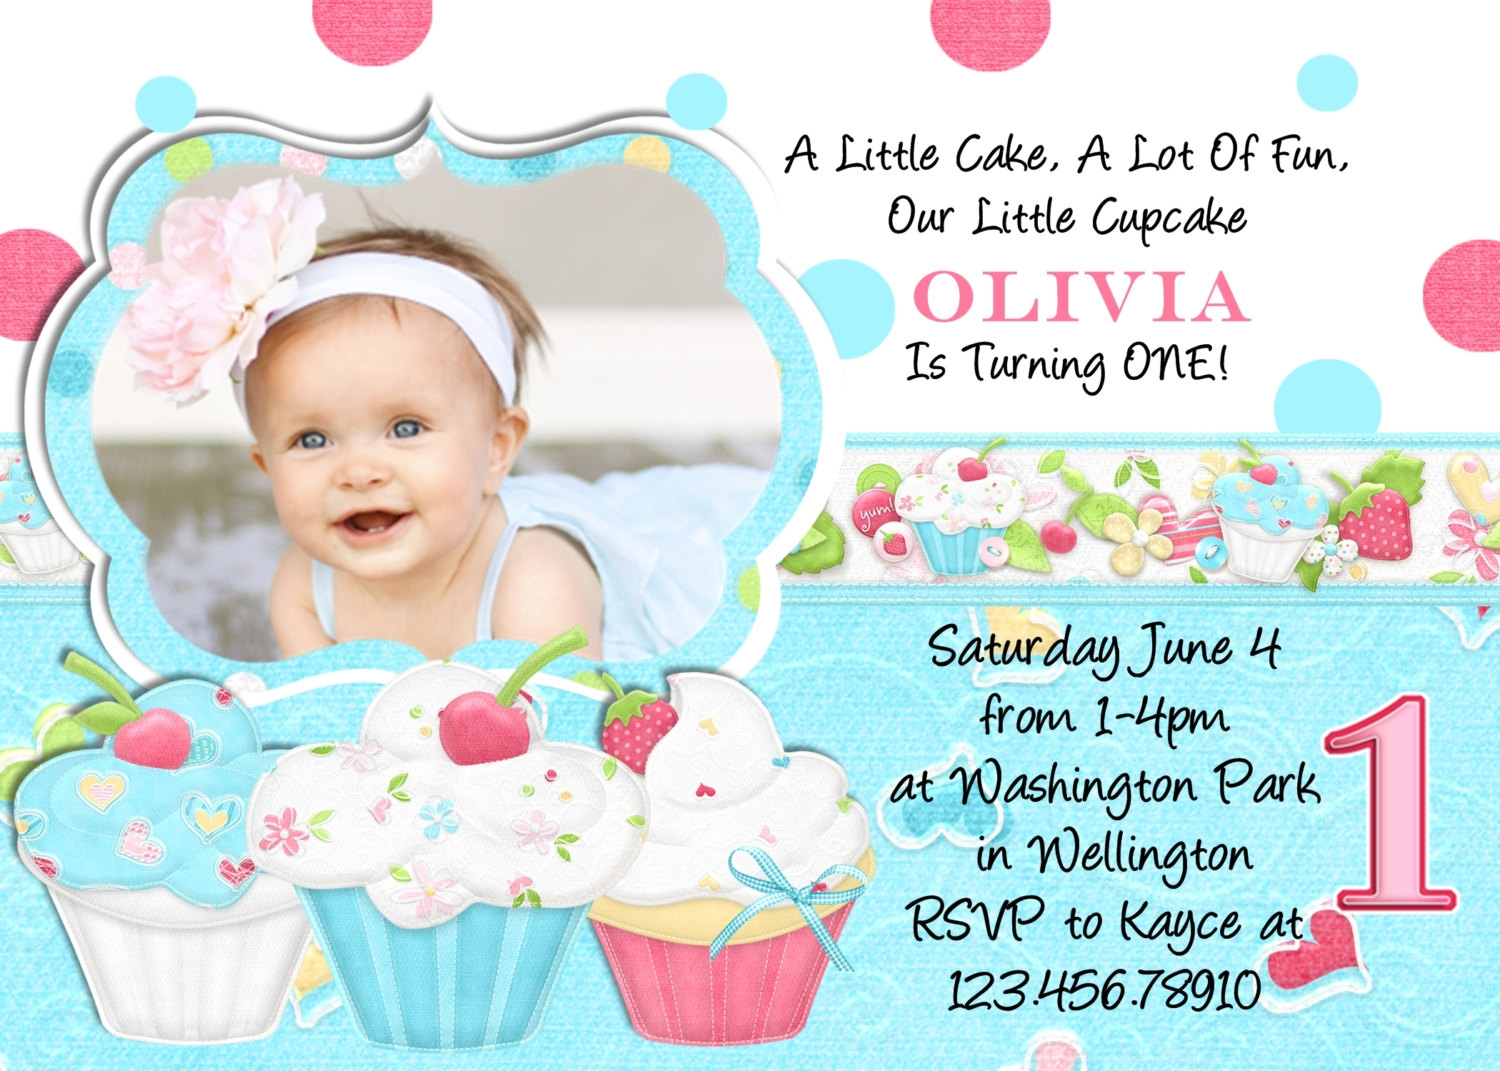 baby birthday invitation card template ; template___birthday_invitation_card_design_0